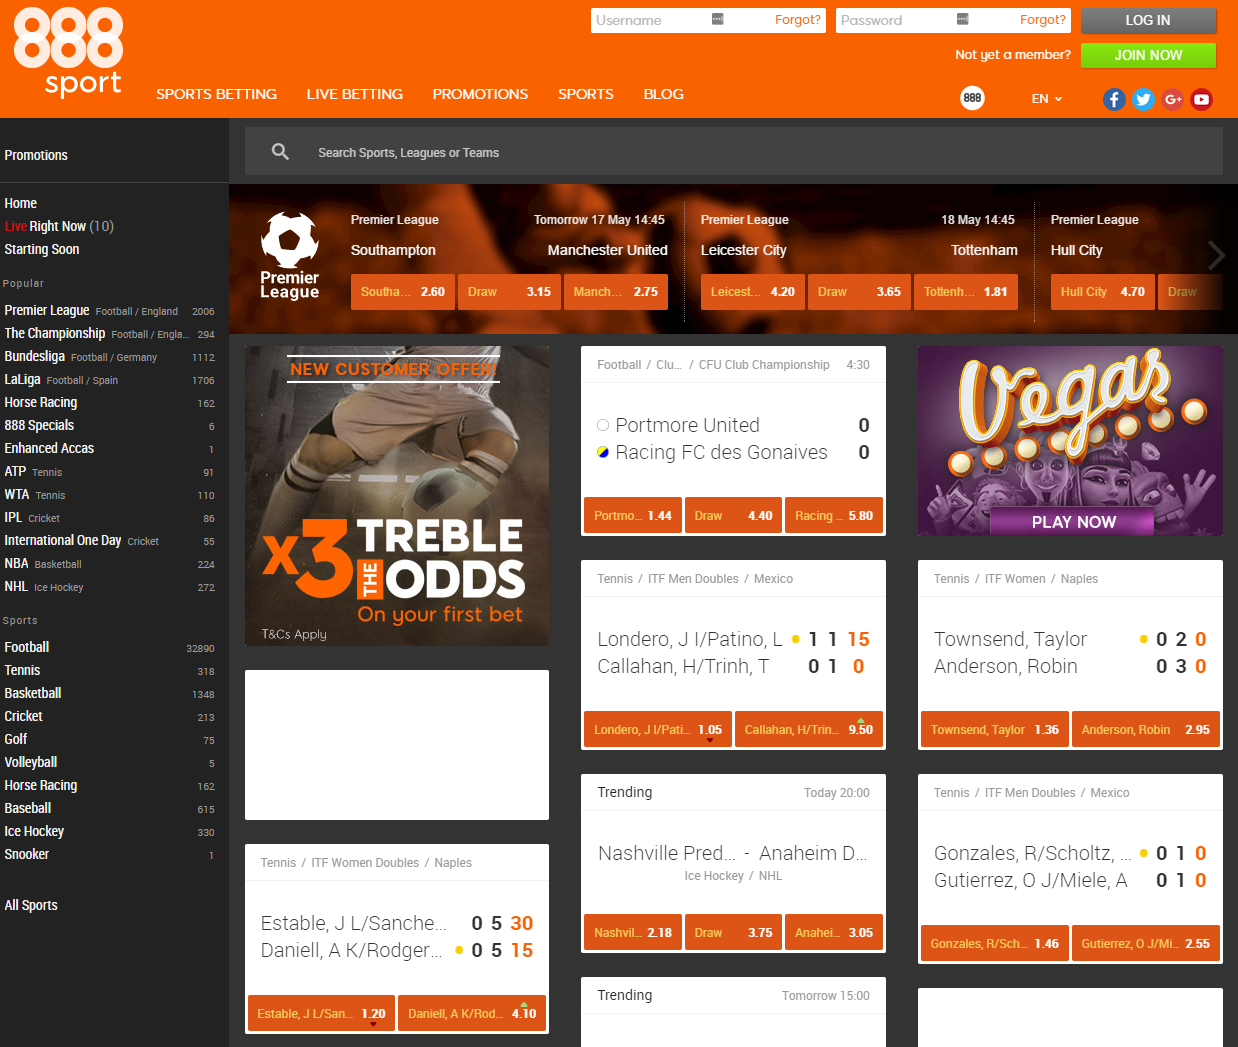 888 Sports Betting Main Page